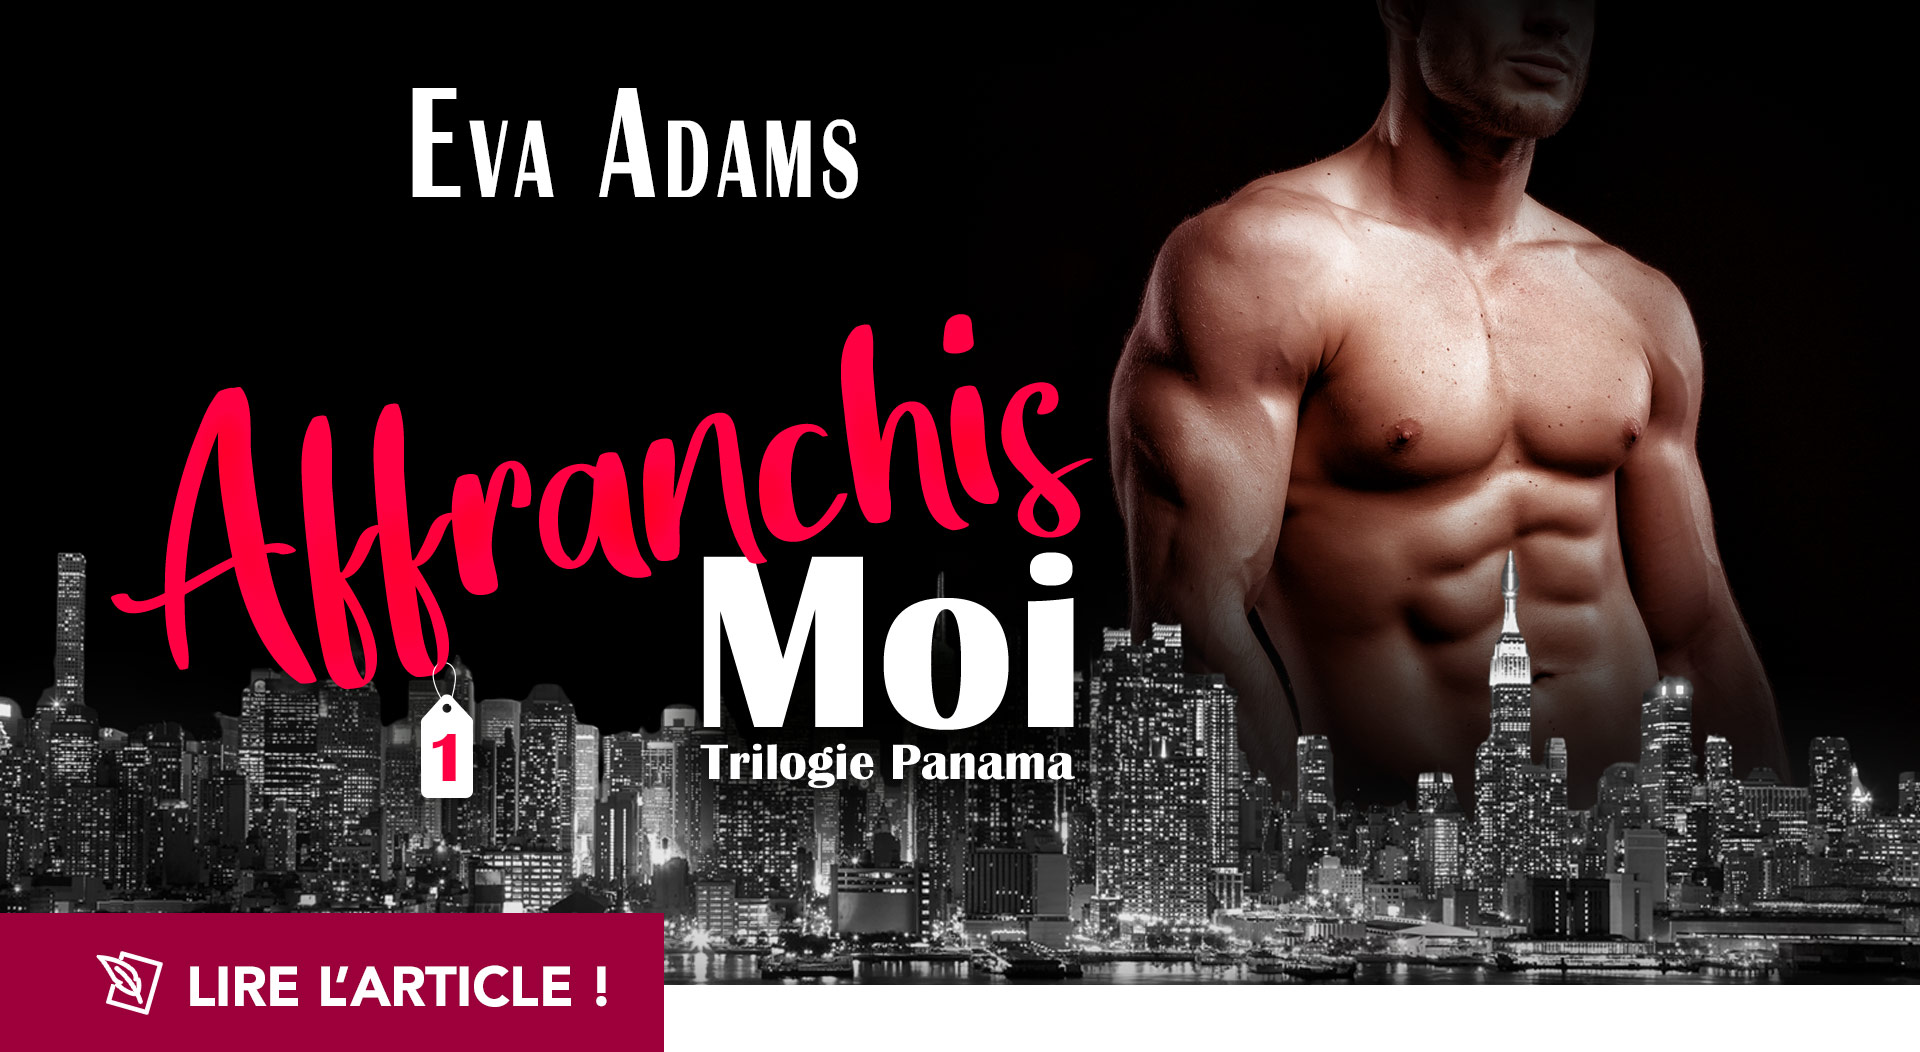 Affranchis-moi article